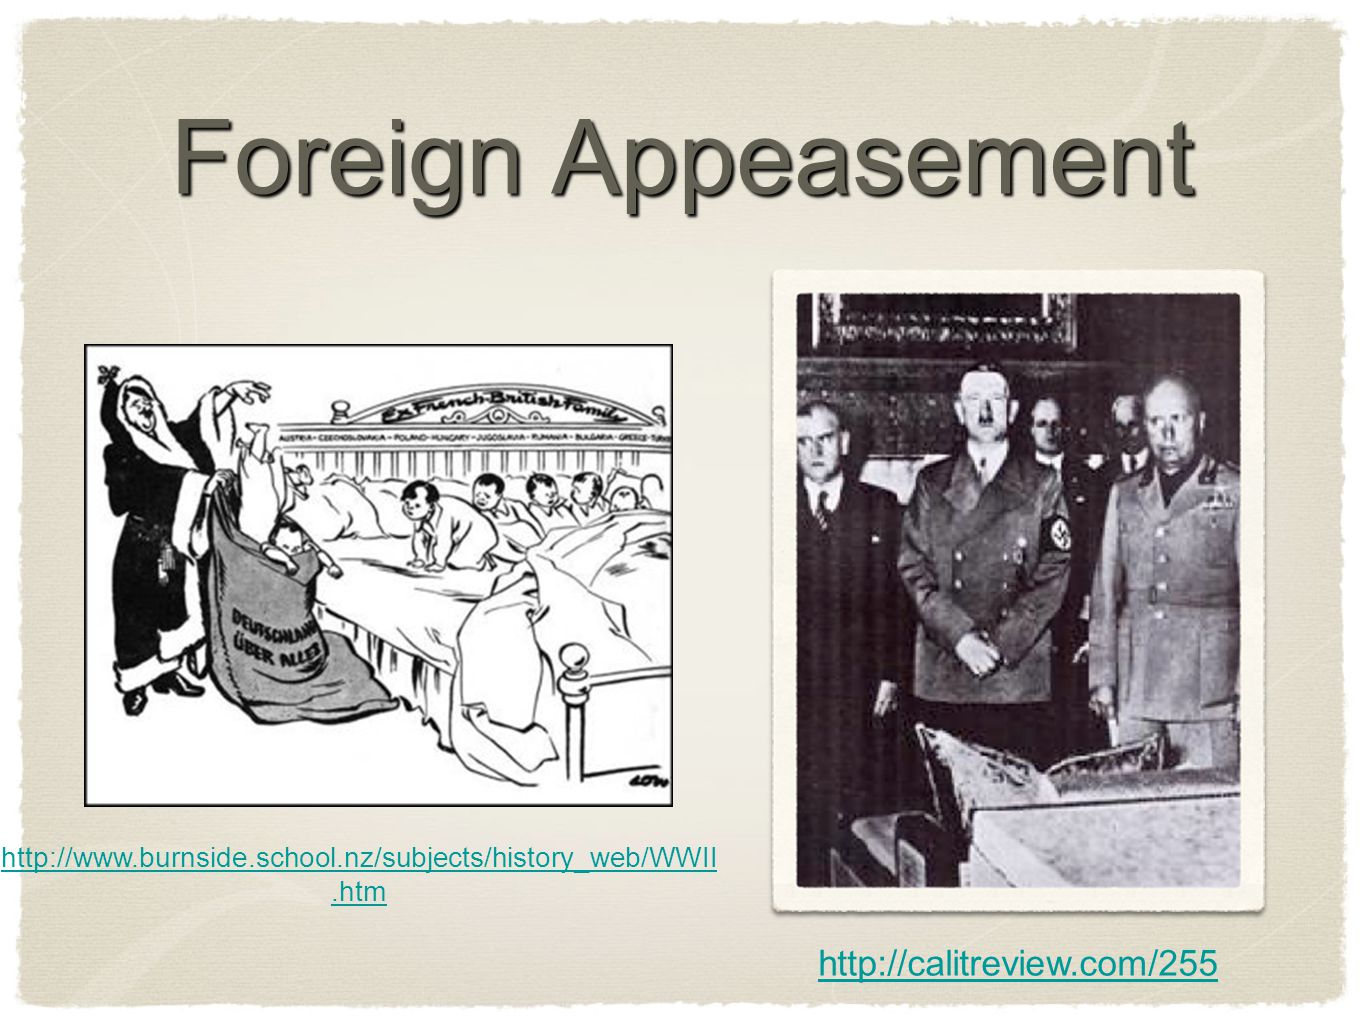 Foreign Appeasement http://calitreview.com/255